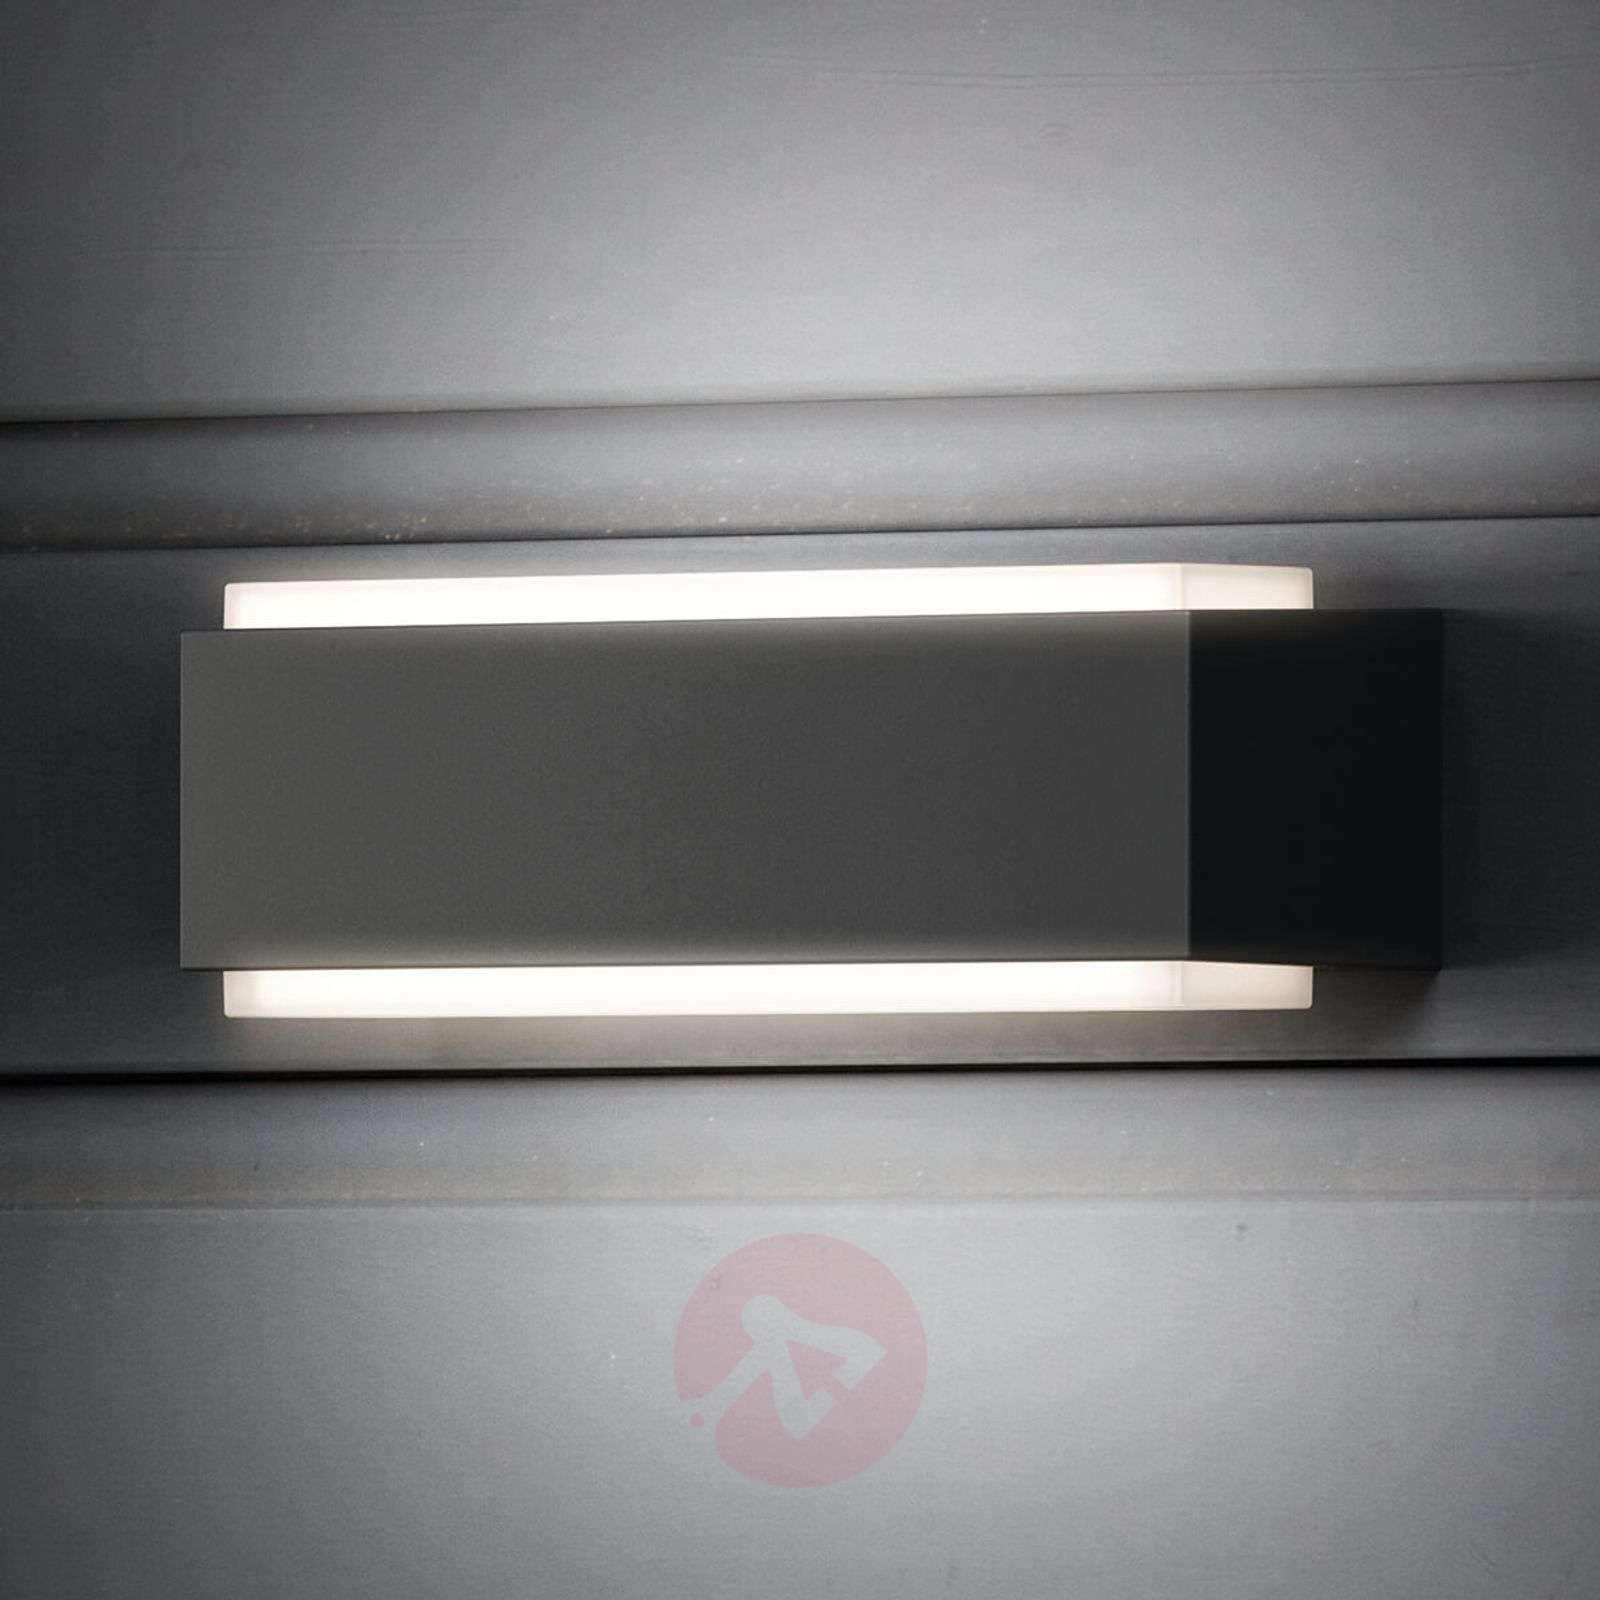 Cool wall lights Deer Cool White Led Outdoor Wall Light Stratosphere753192801 Haushaltshilfepoleninfo Cool White Led Outdoor Wall Light Stratosphere Lightscouk